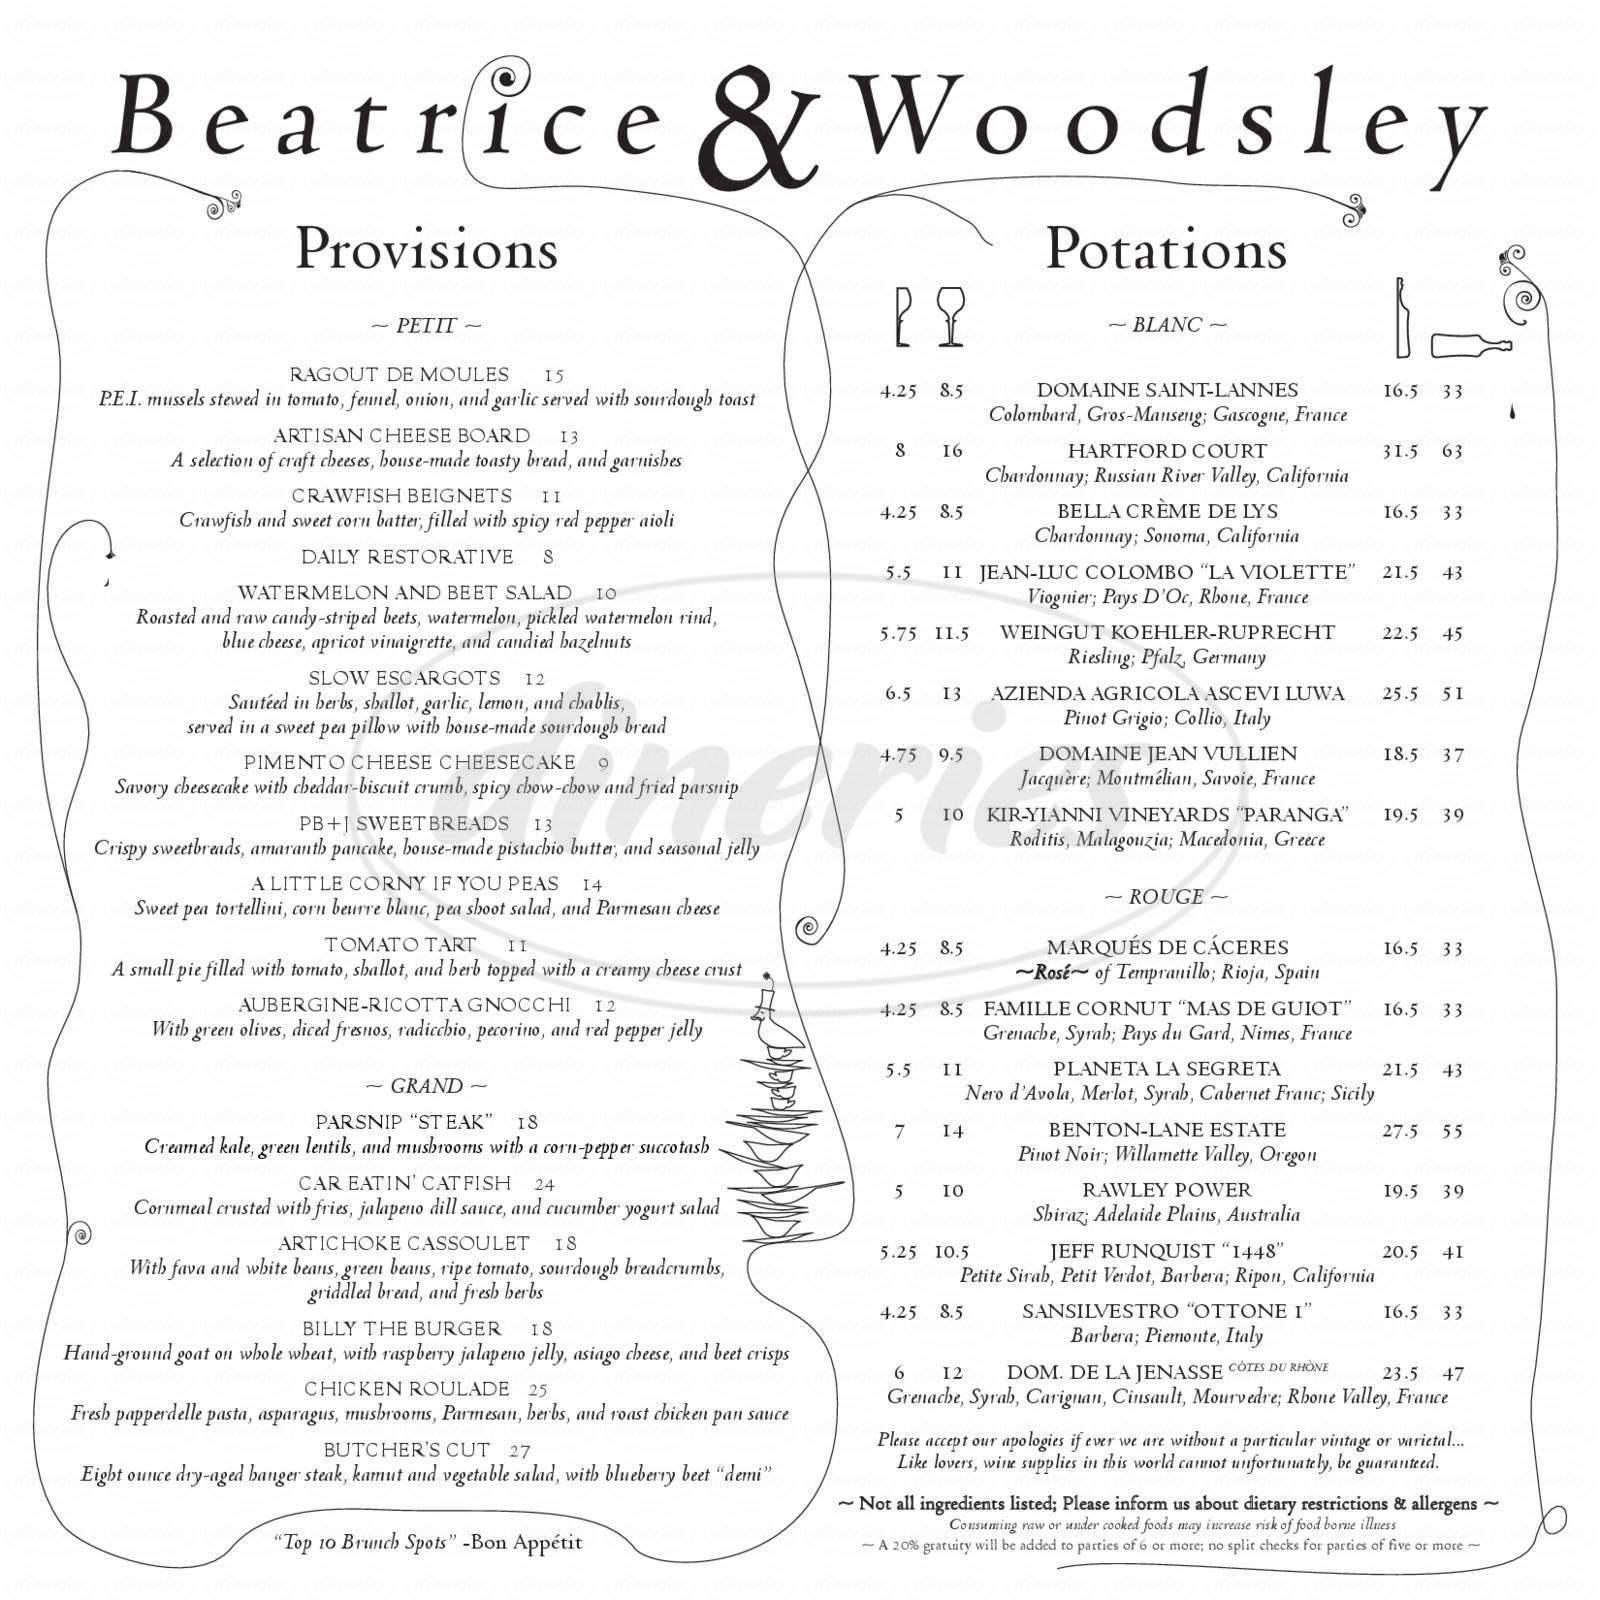 menu for Beatrice & Woodsley